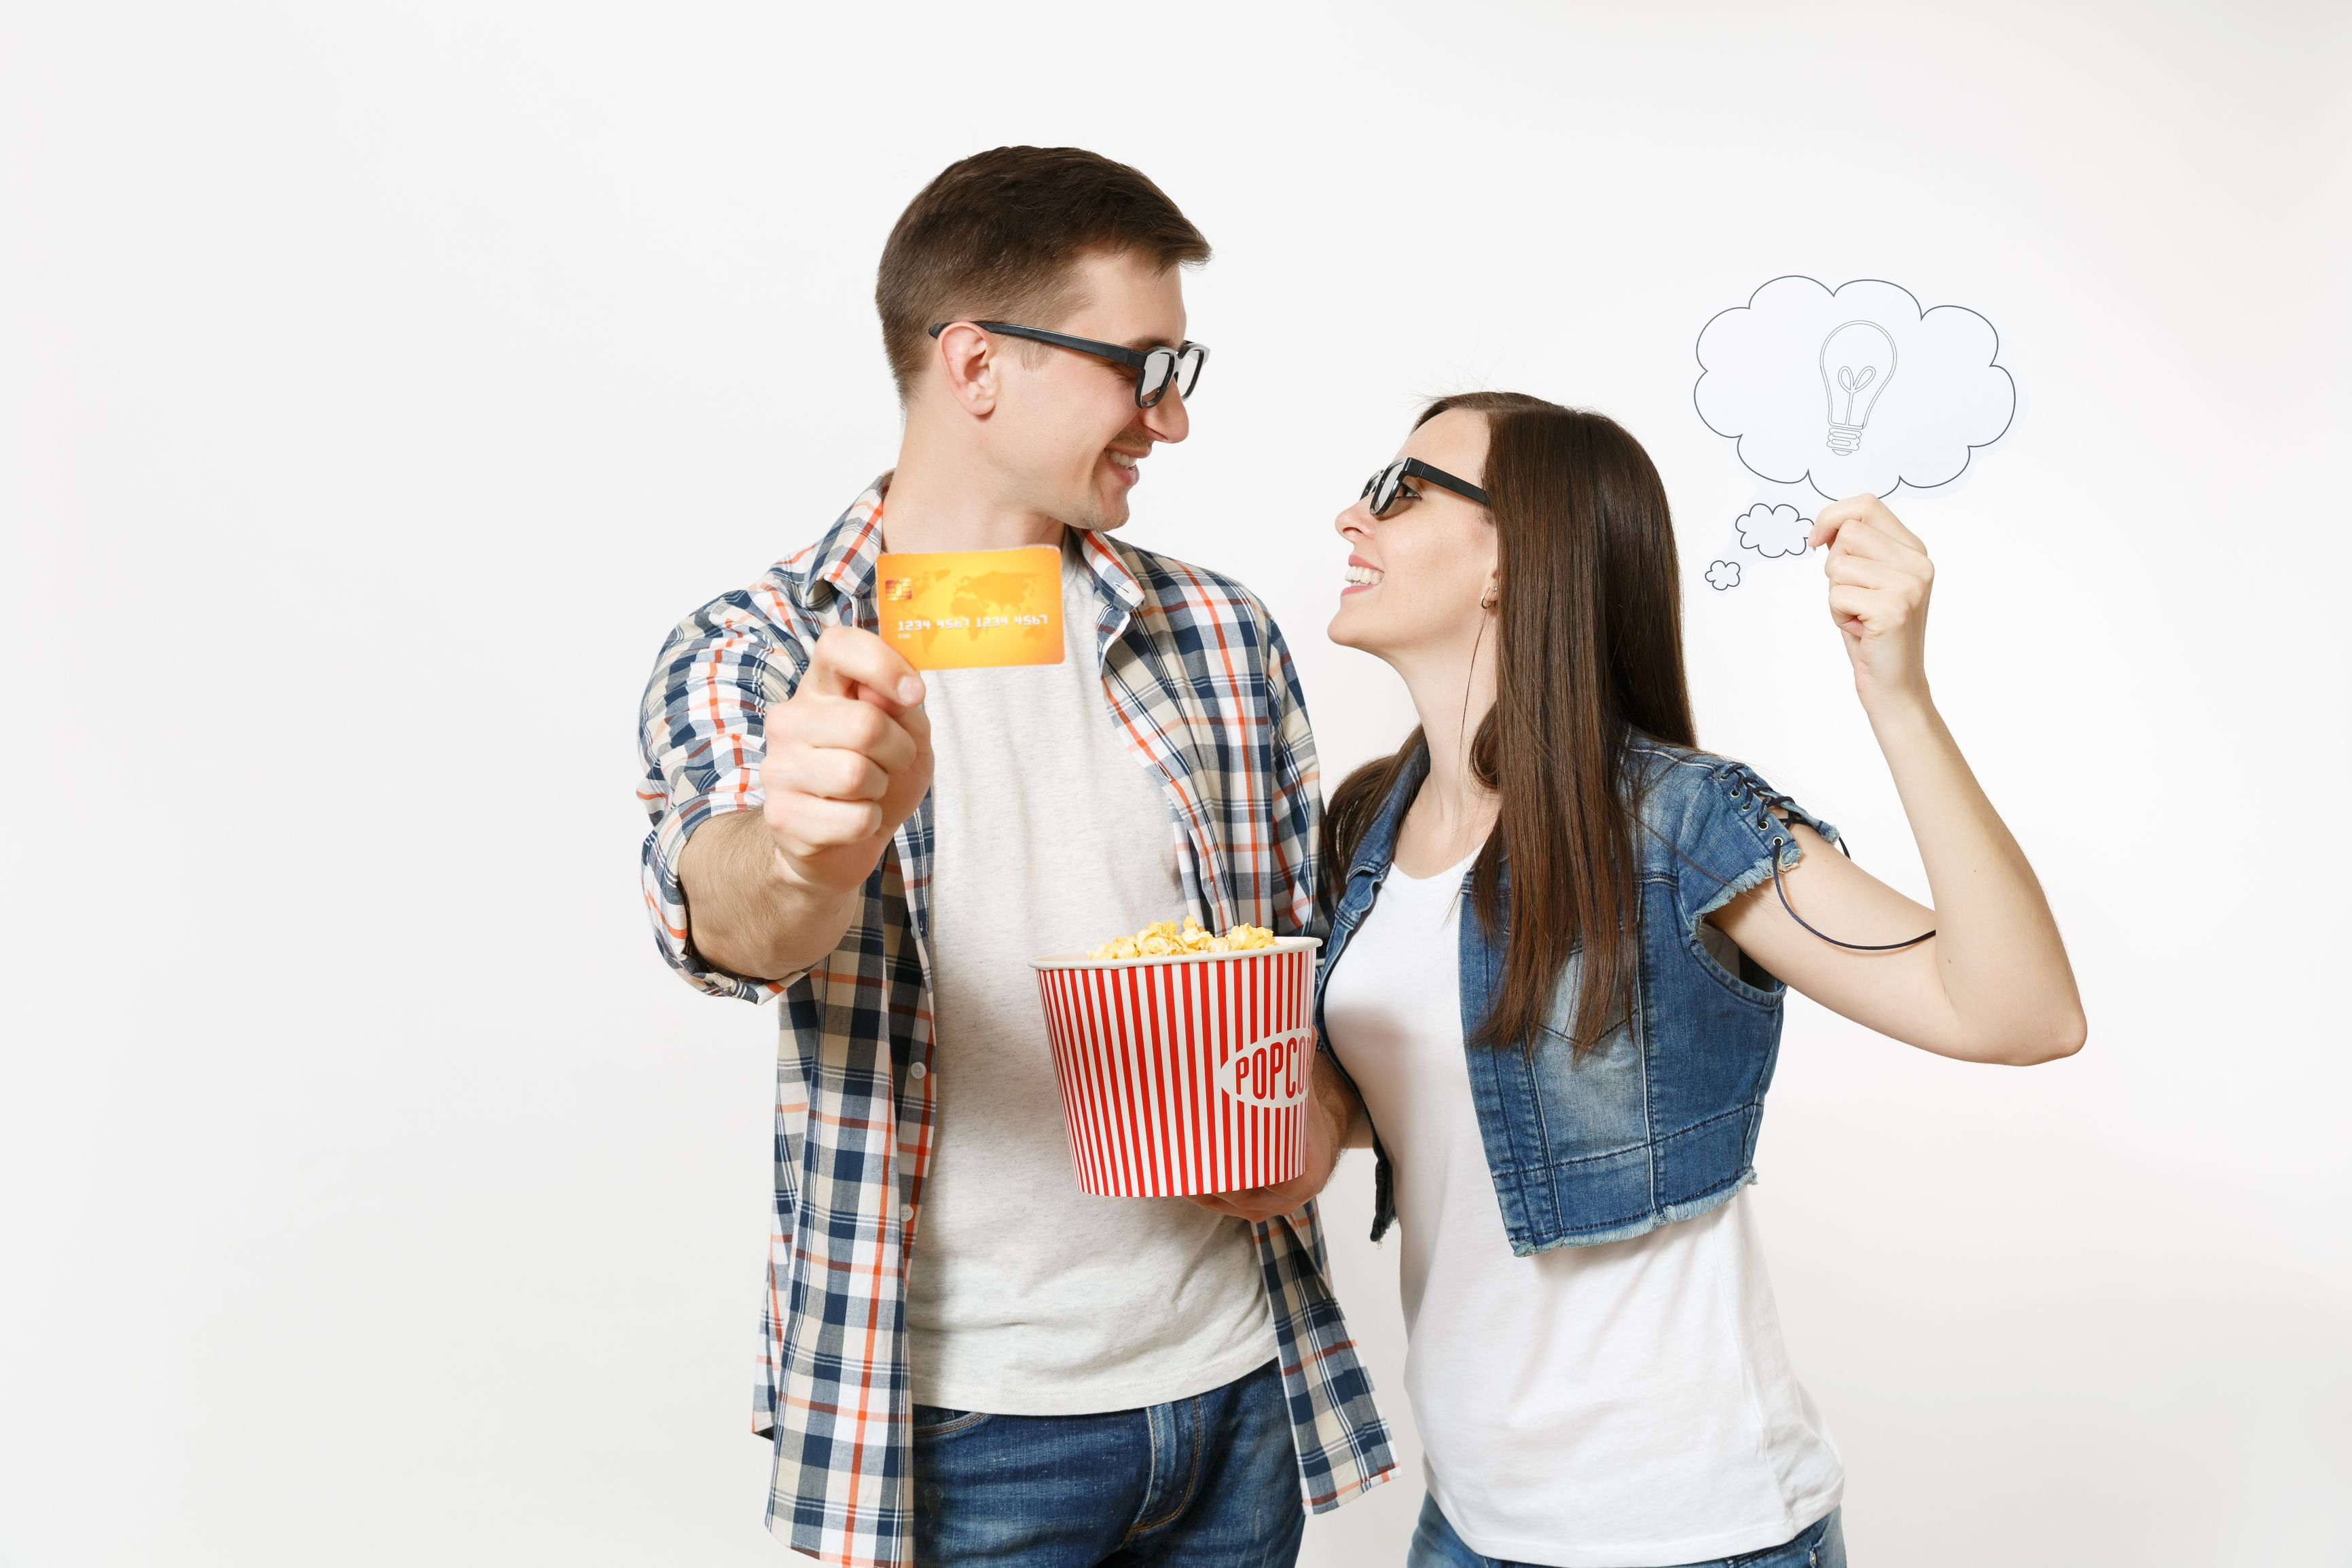 Ideas To Make Date Night Happen! | Date night ideas for